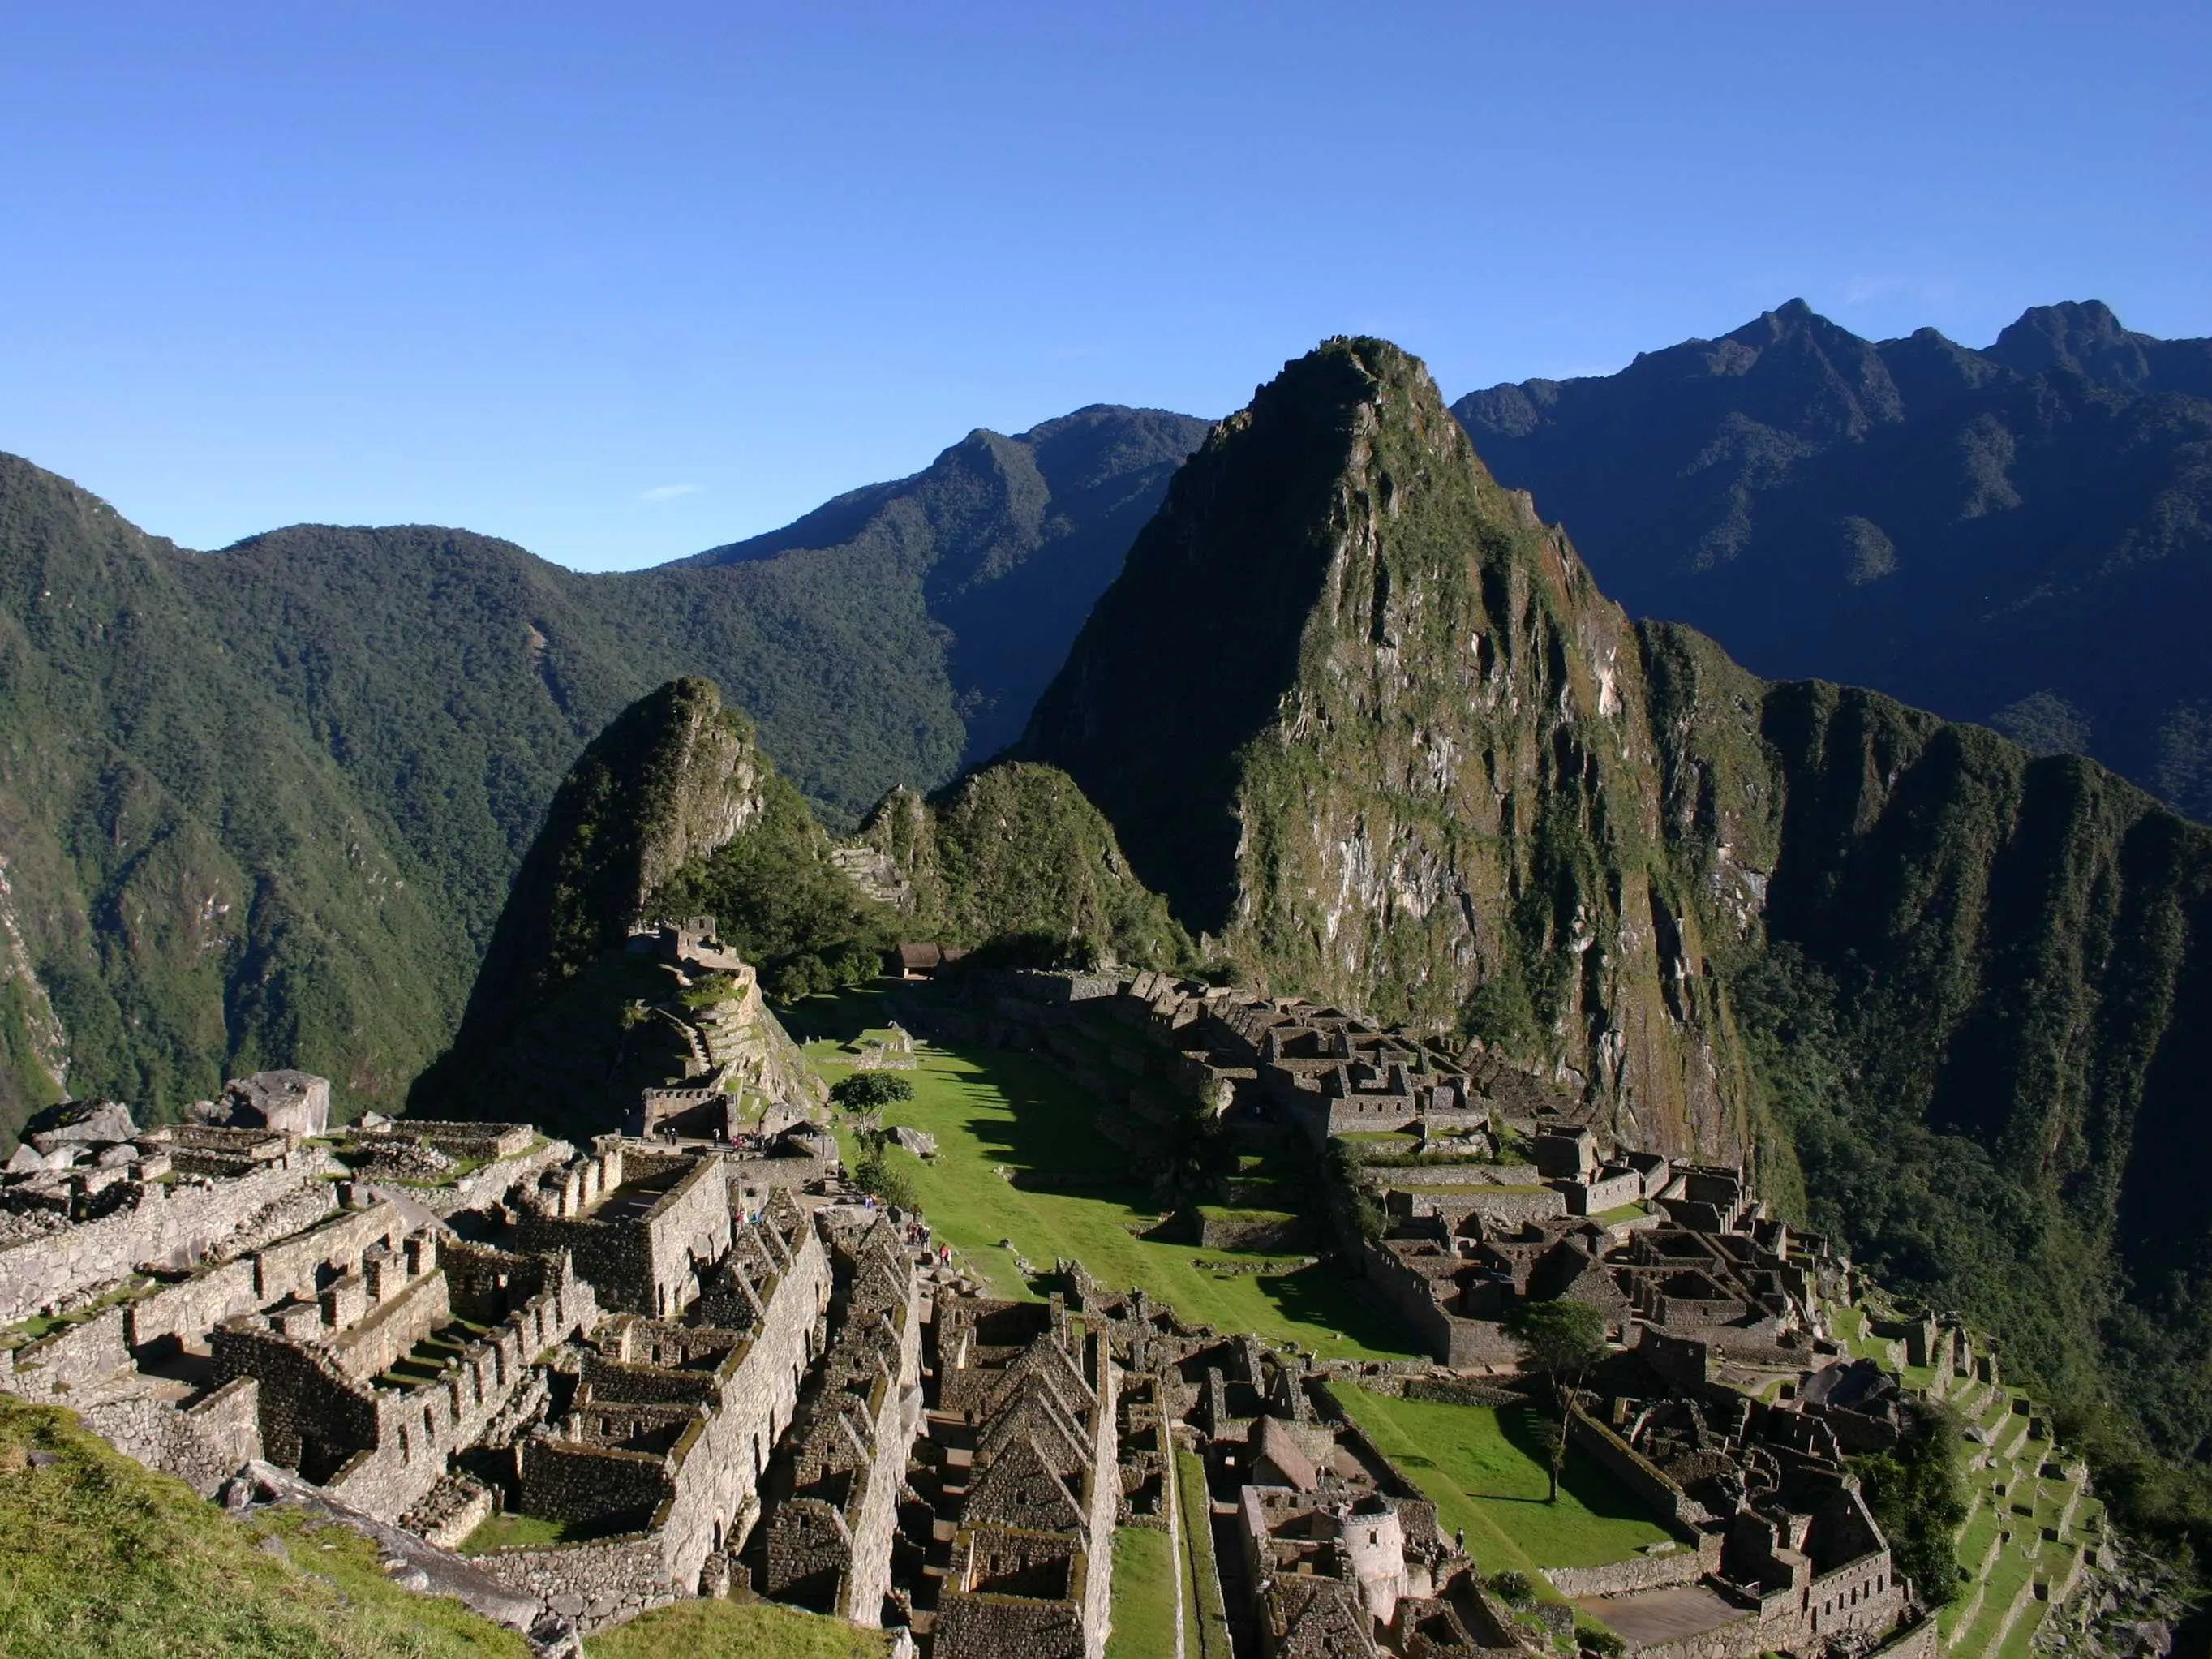 Climb to the top of Huayna Picchu for a bird's-eye view of Machu Picchu.